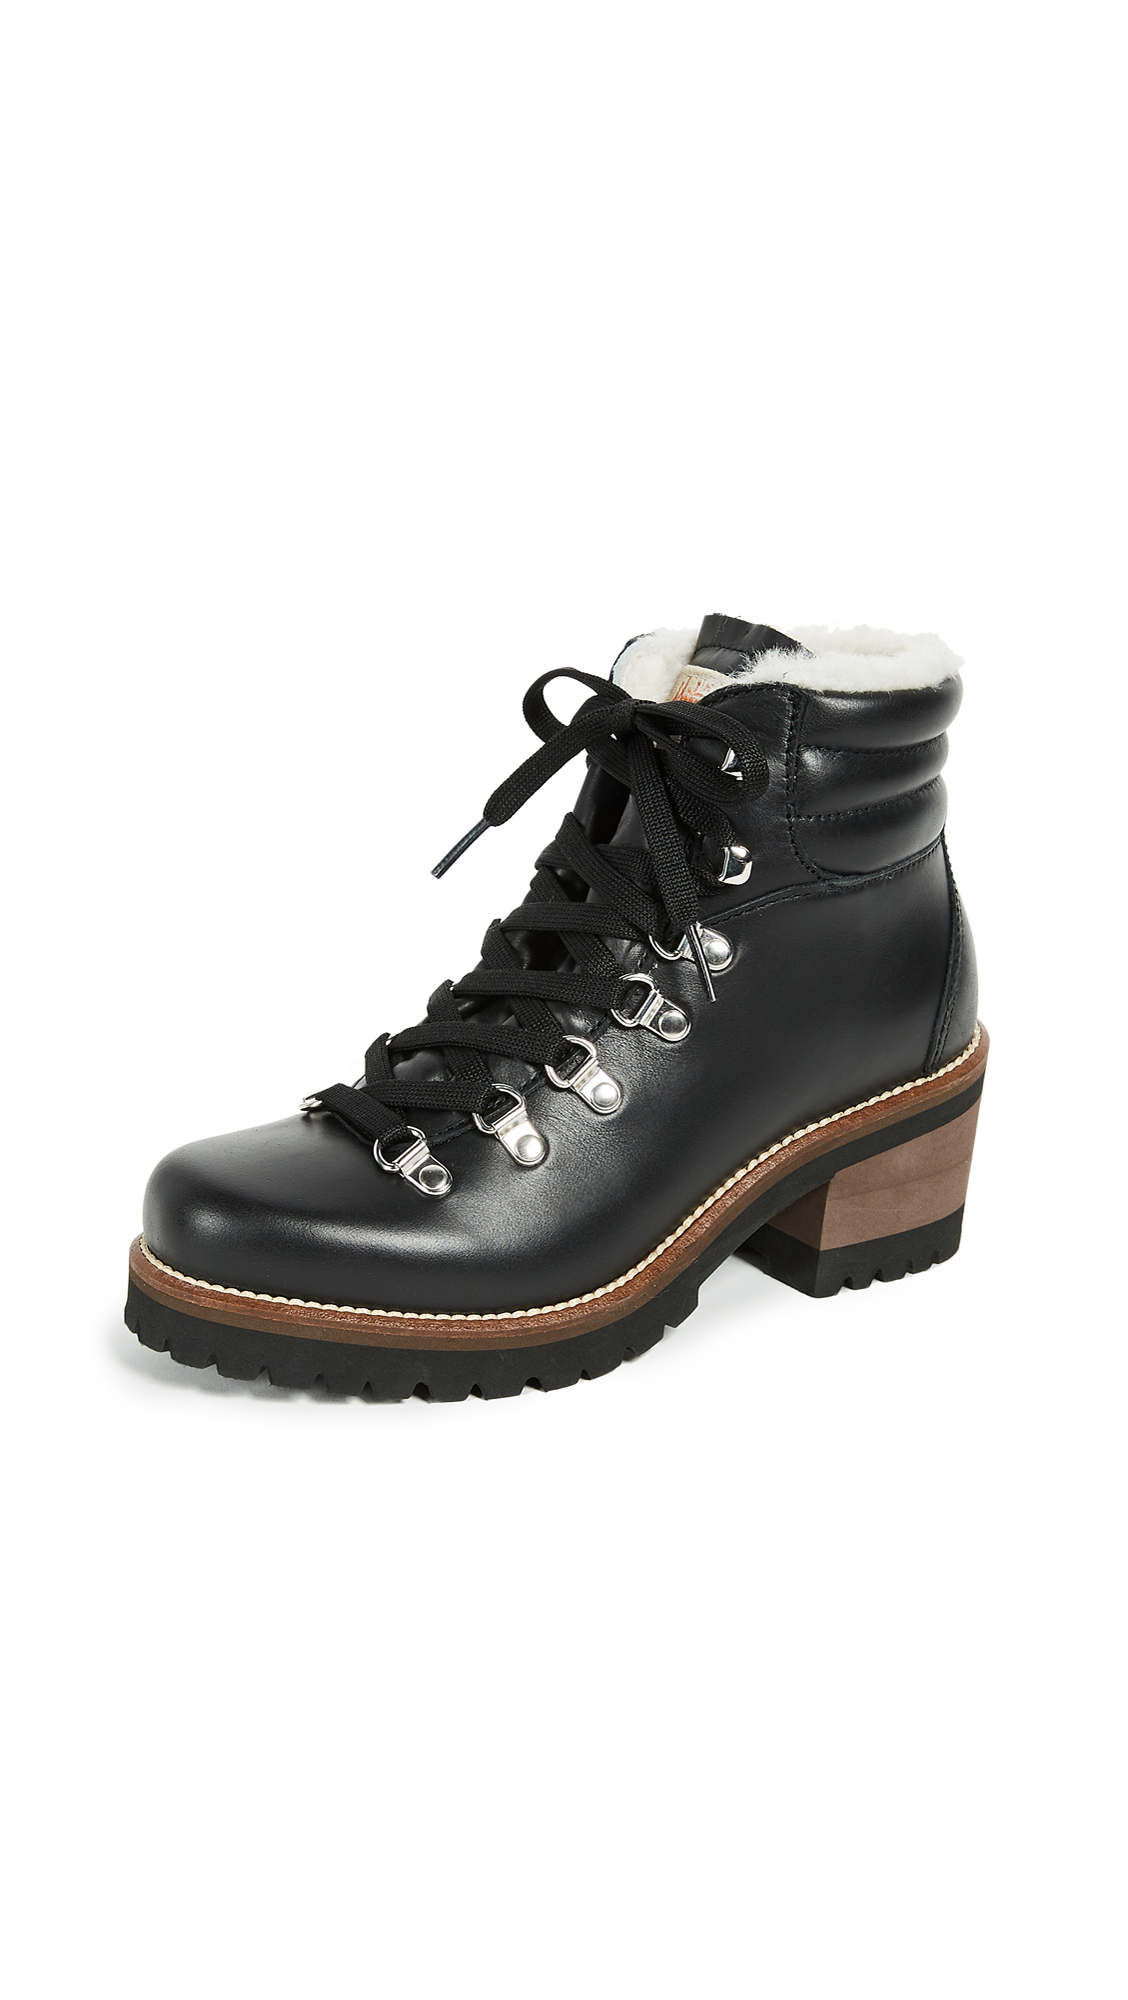 Montelliana Ninfea Heeled Hiker Boots - Black